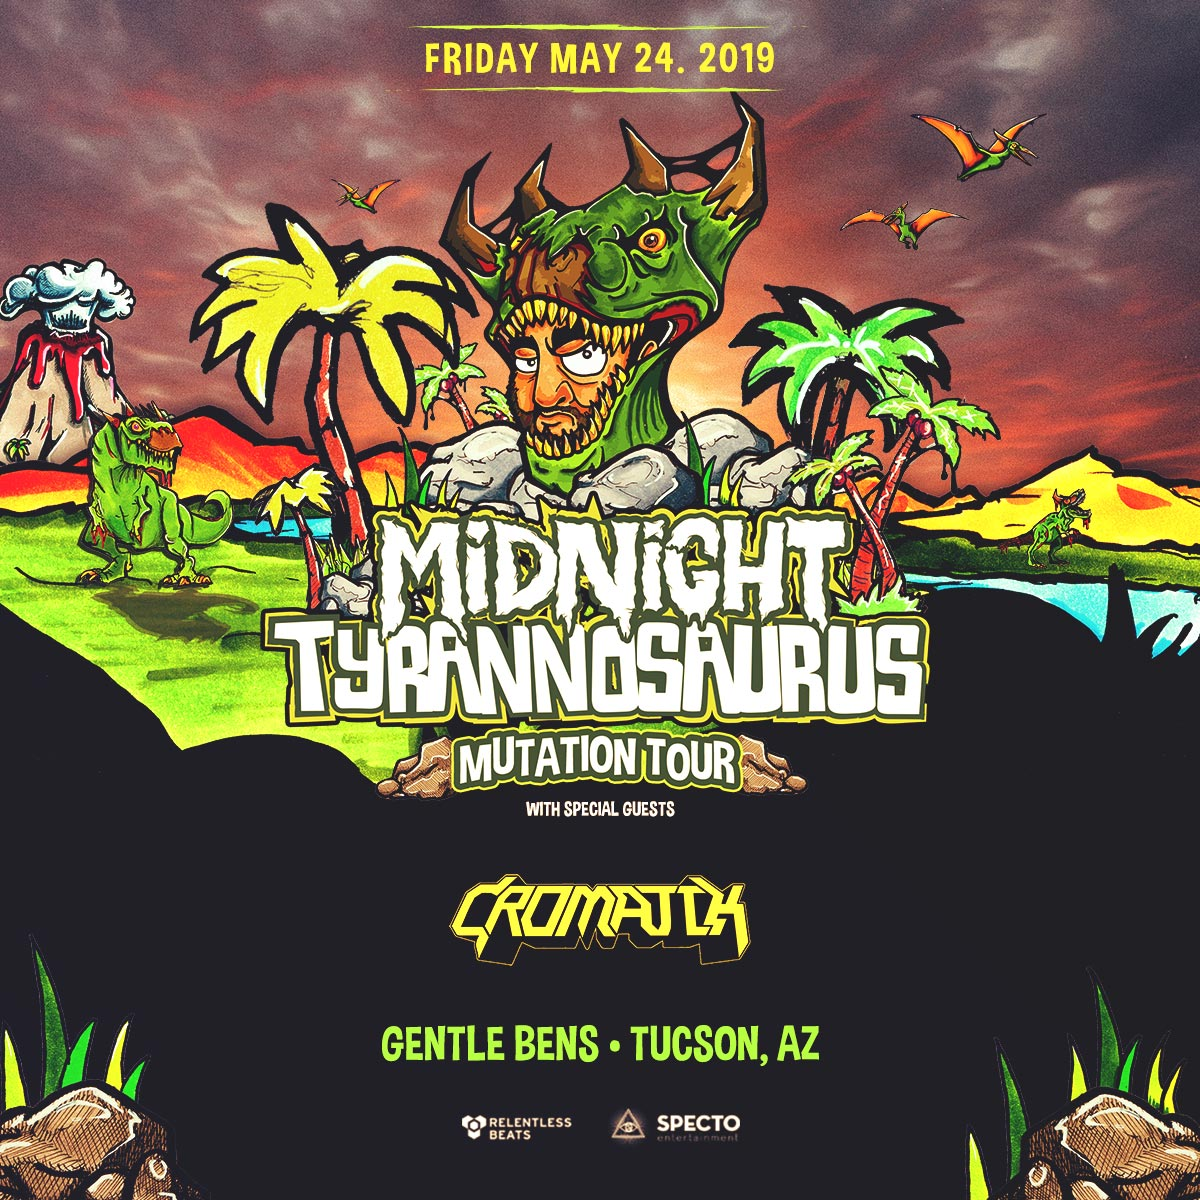 Flyer for Midnight Tyrannosaurus